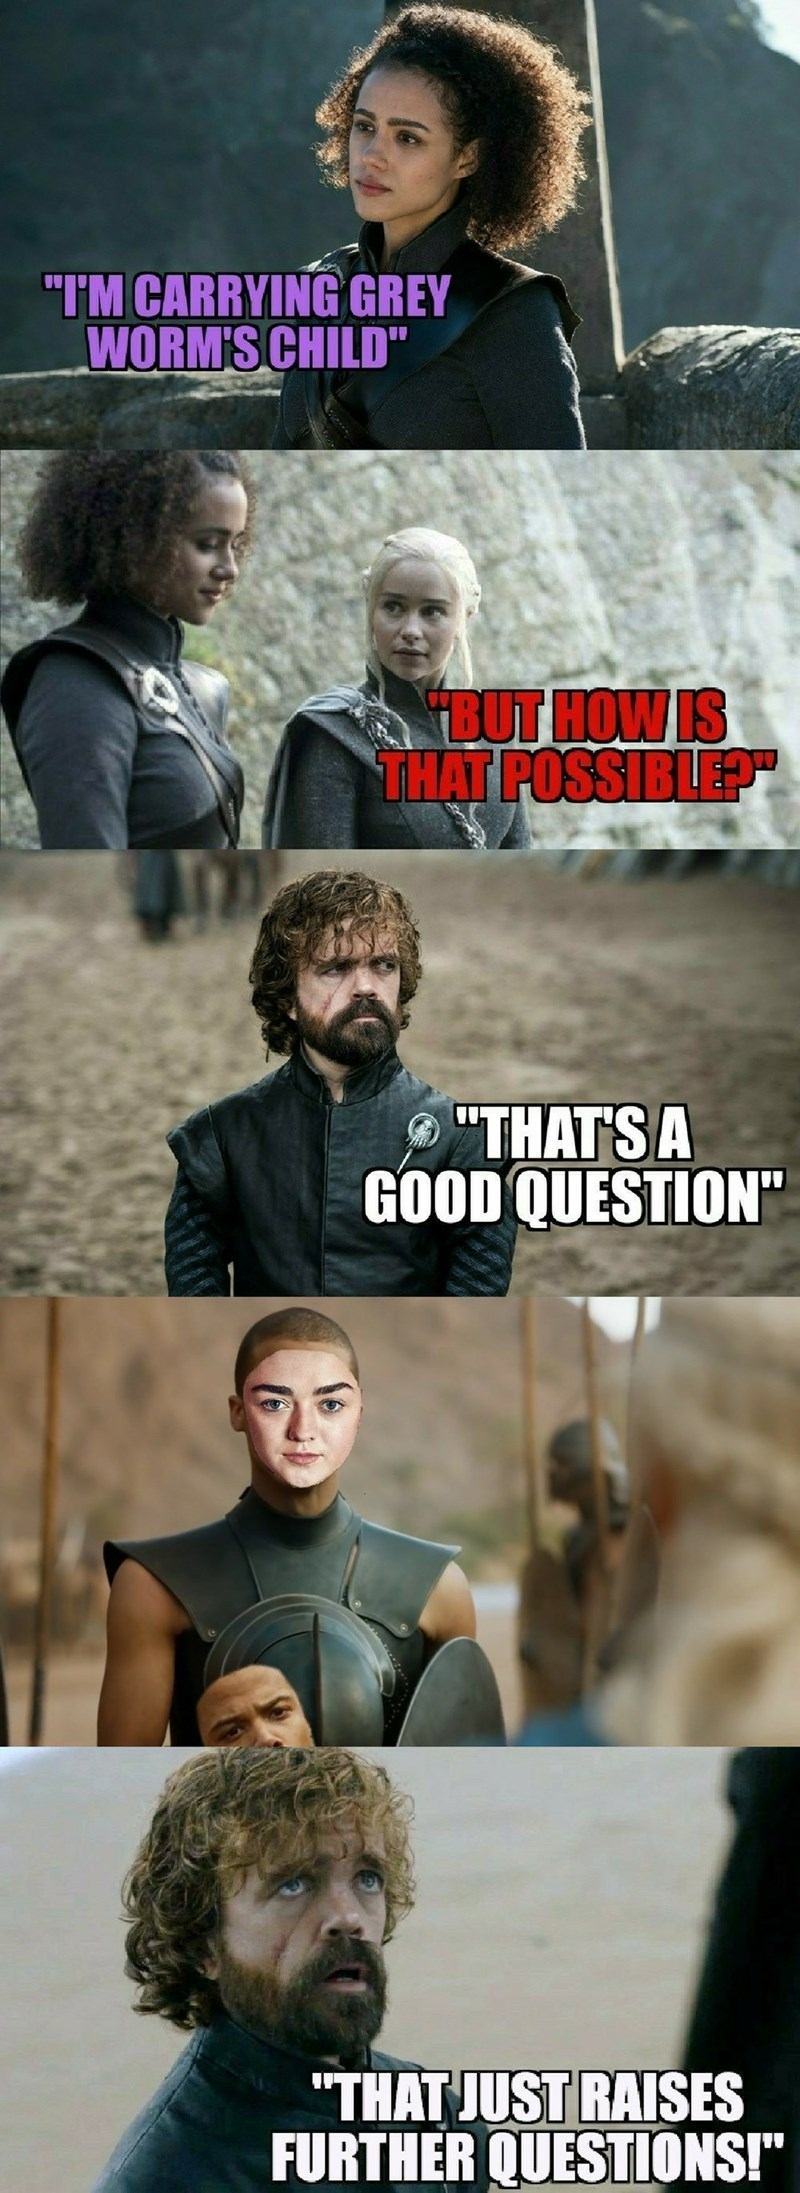 Funny meme about Arya stark pretending to be grey worm and getting Missandei pregnant.